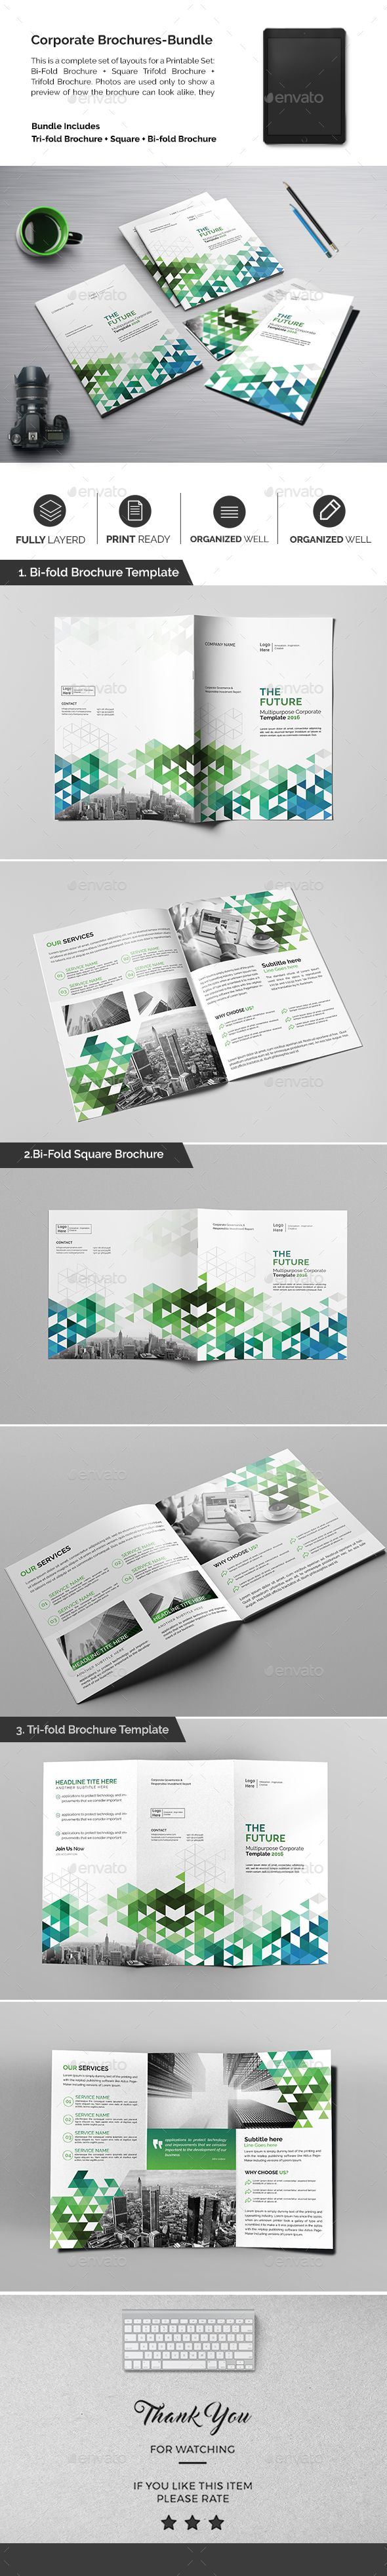 Corporate Brochures Template PSD Bundle. Download here: https://graphicriver.net/item/corporate-brochures-bundle-08/17318581?ref=ksioks